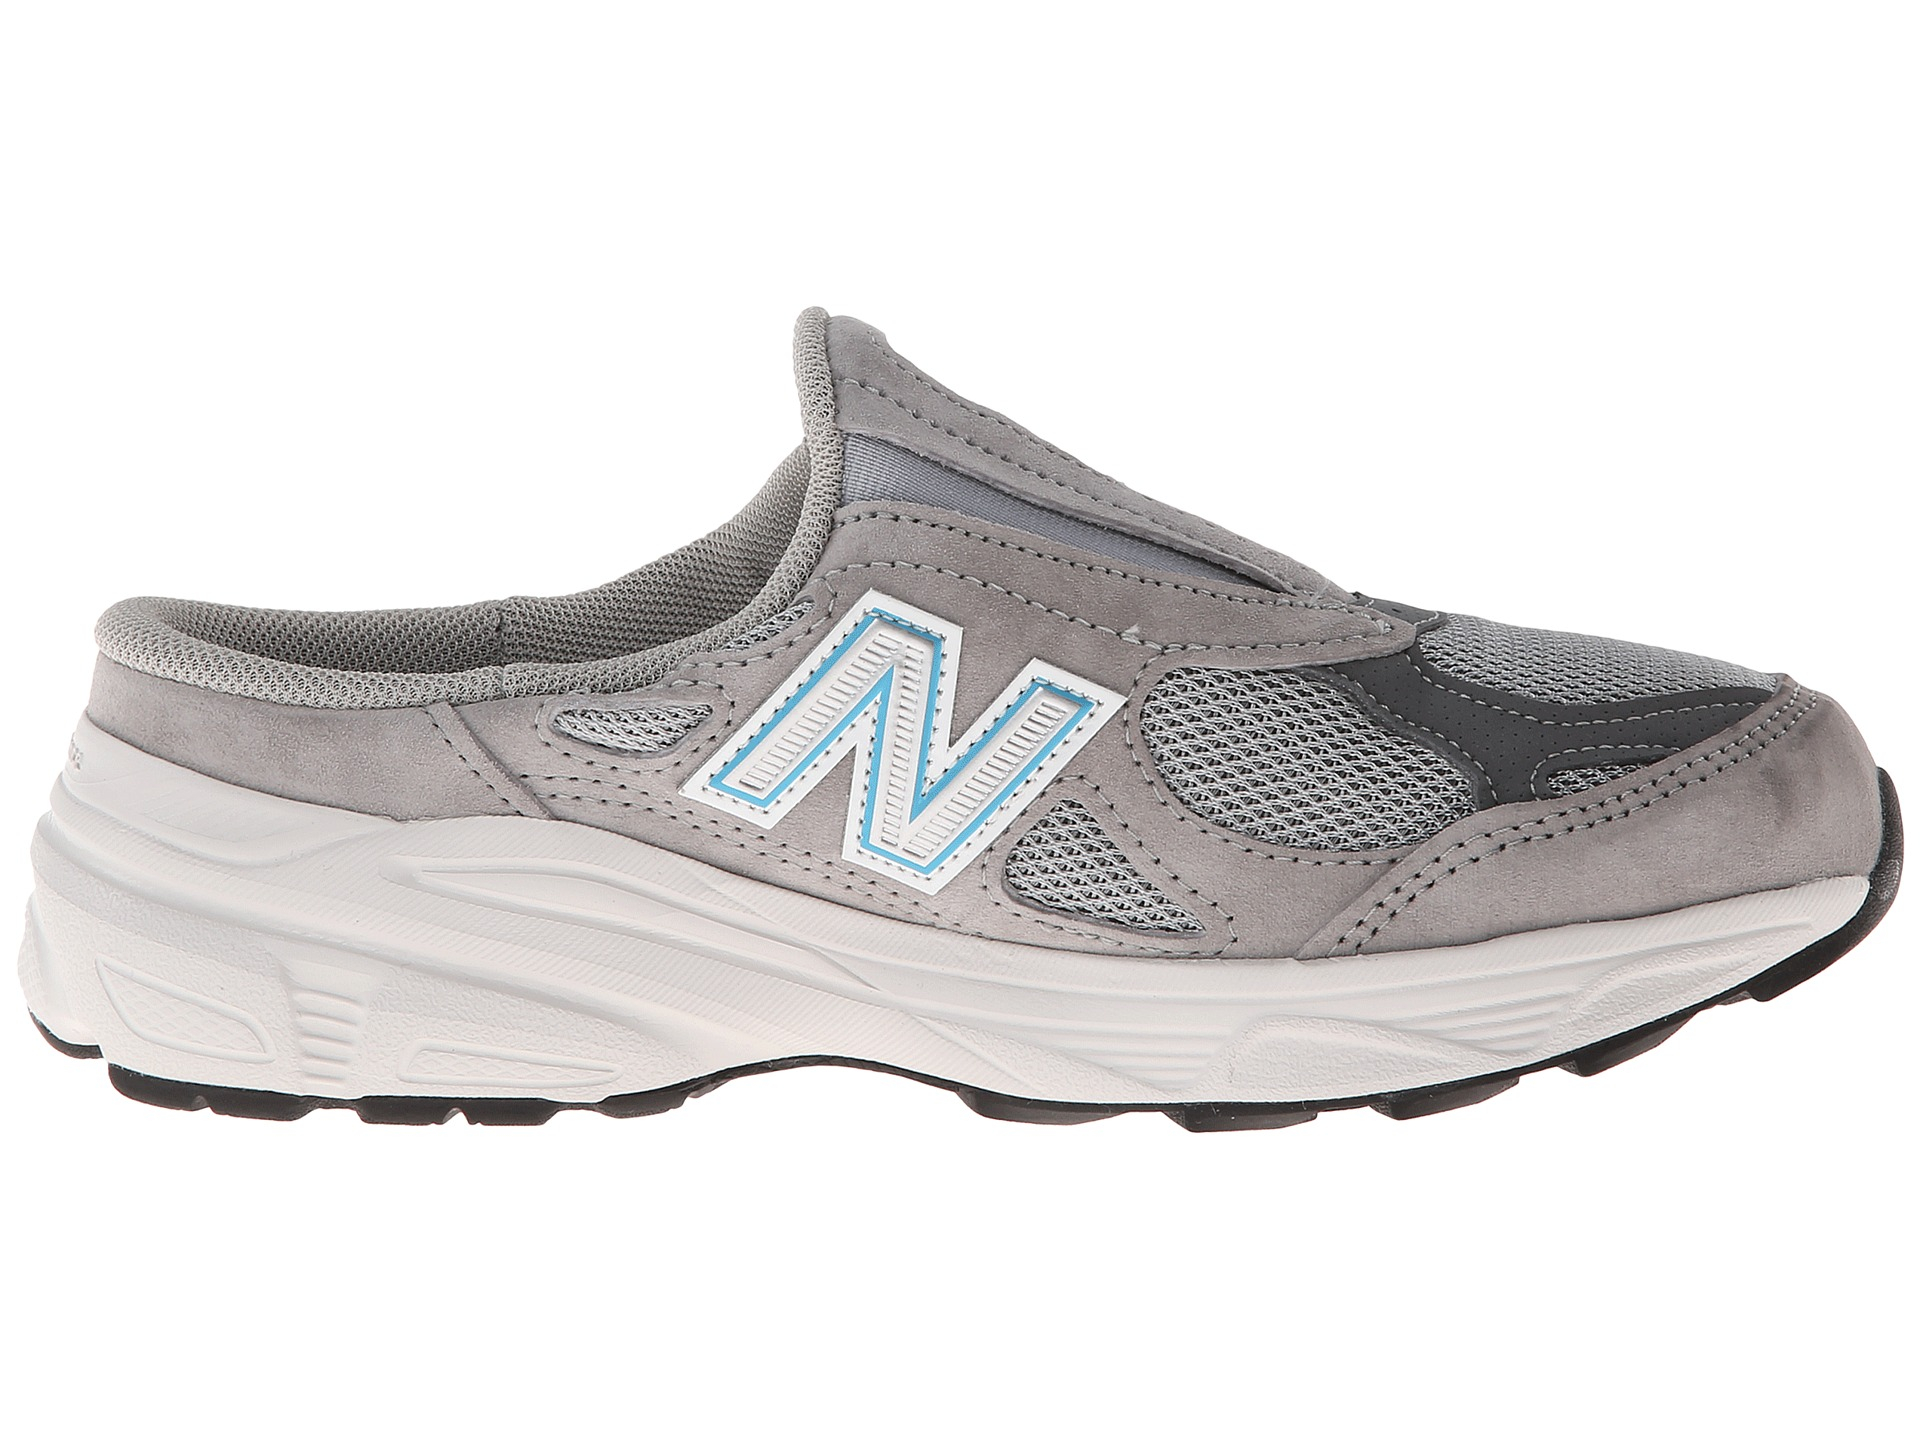 detailed look f8f55 f4708 ... New Balance Men s 990v4 Running Shoes Gallery ...